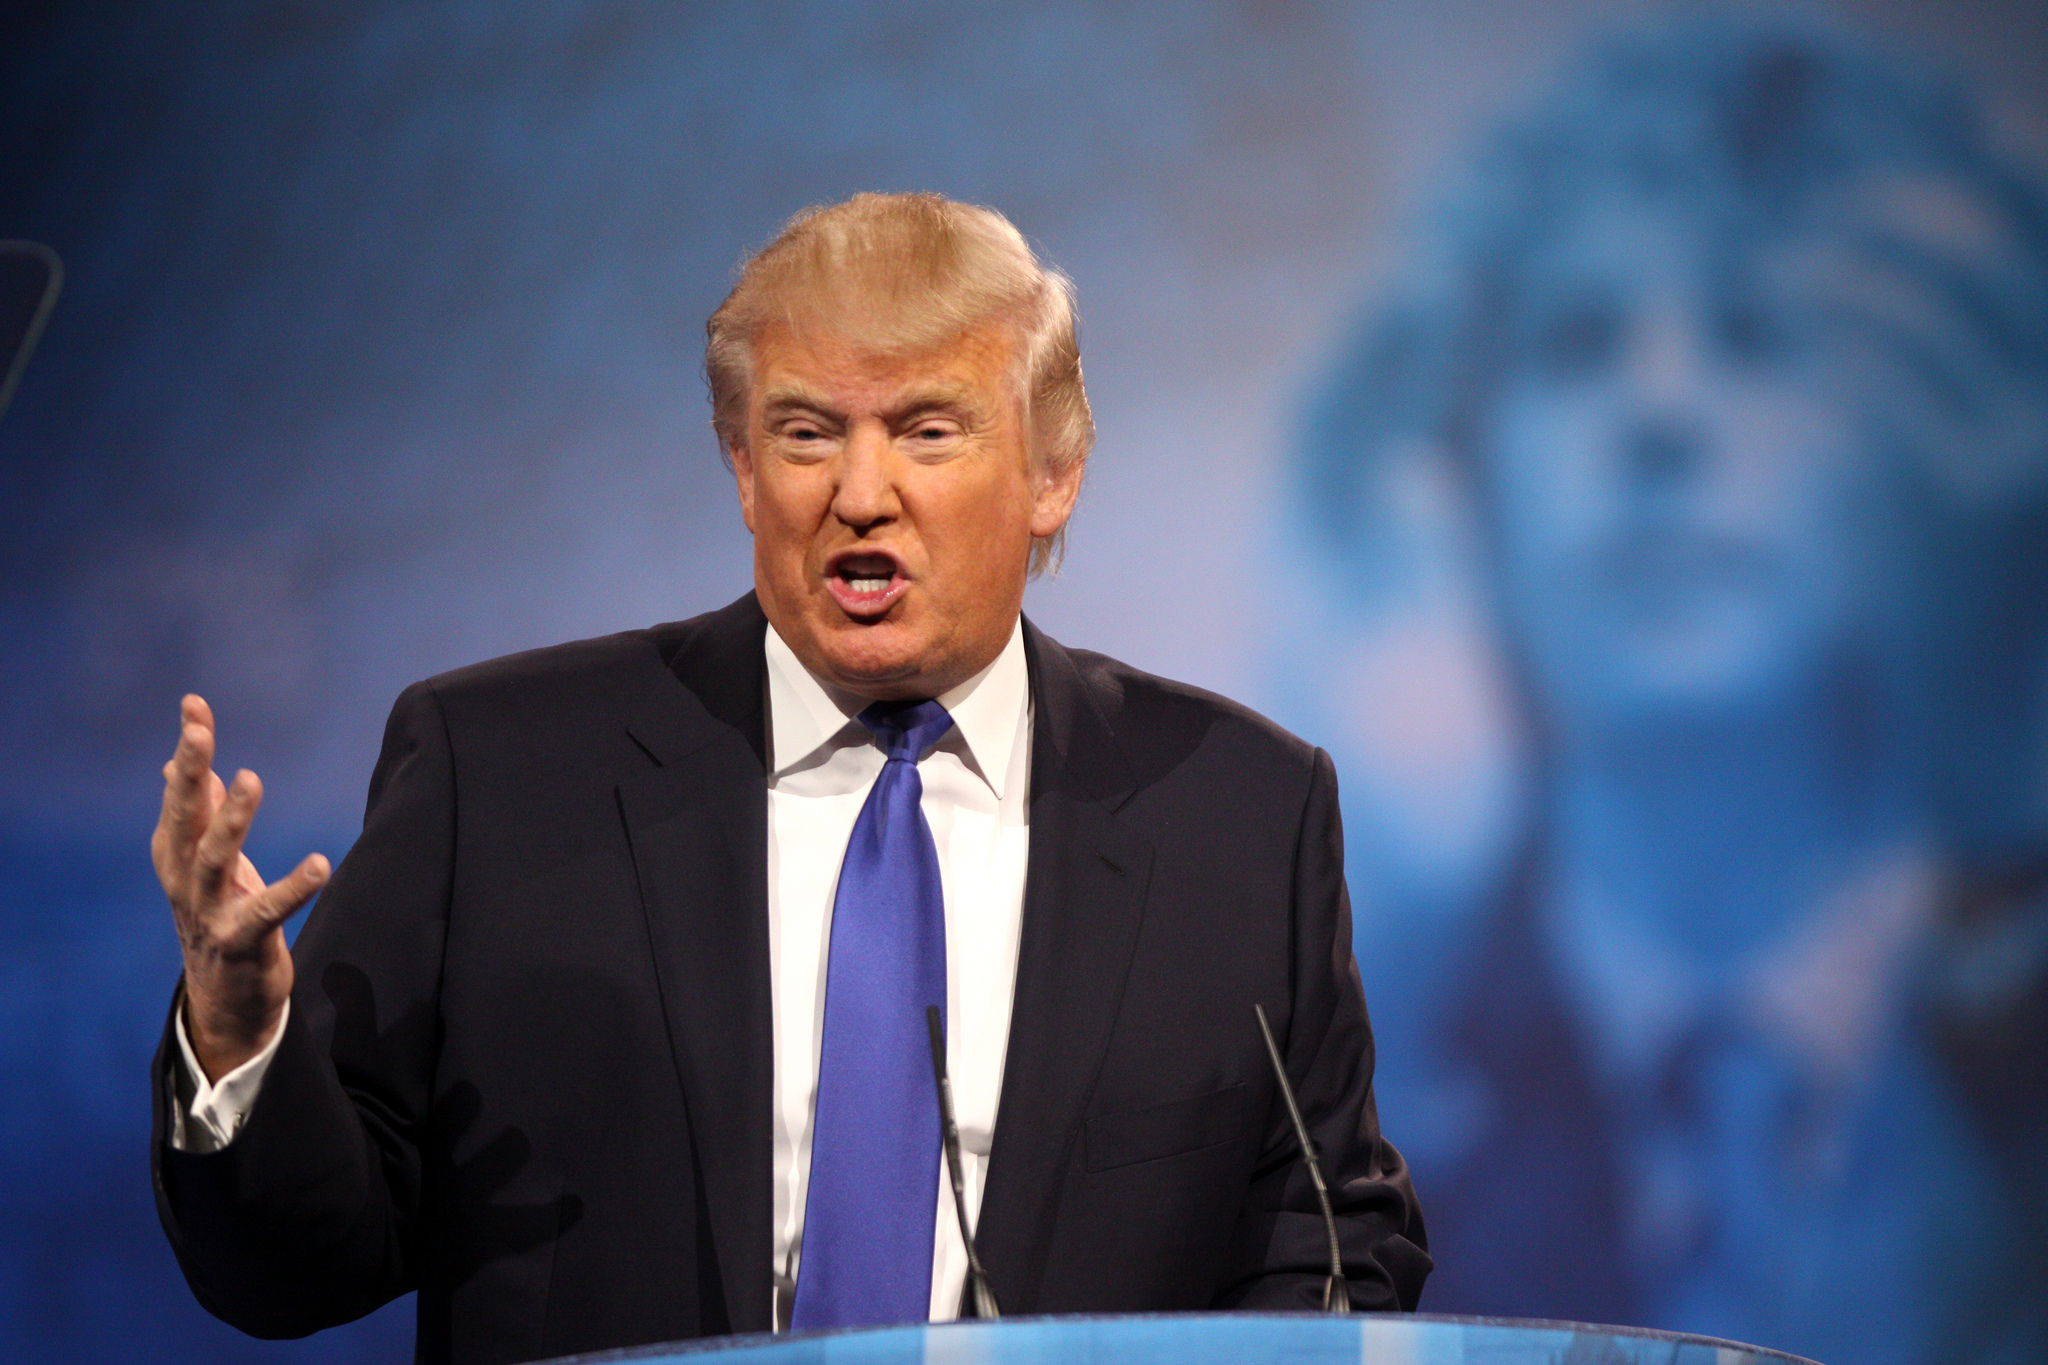 Donald Trump spricht 2013 auf der Conservative Political Action Conference (CPAC) in National Harbor, Maryland.